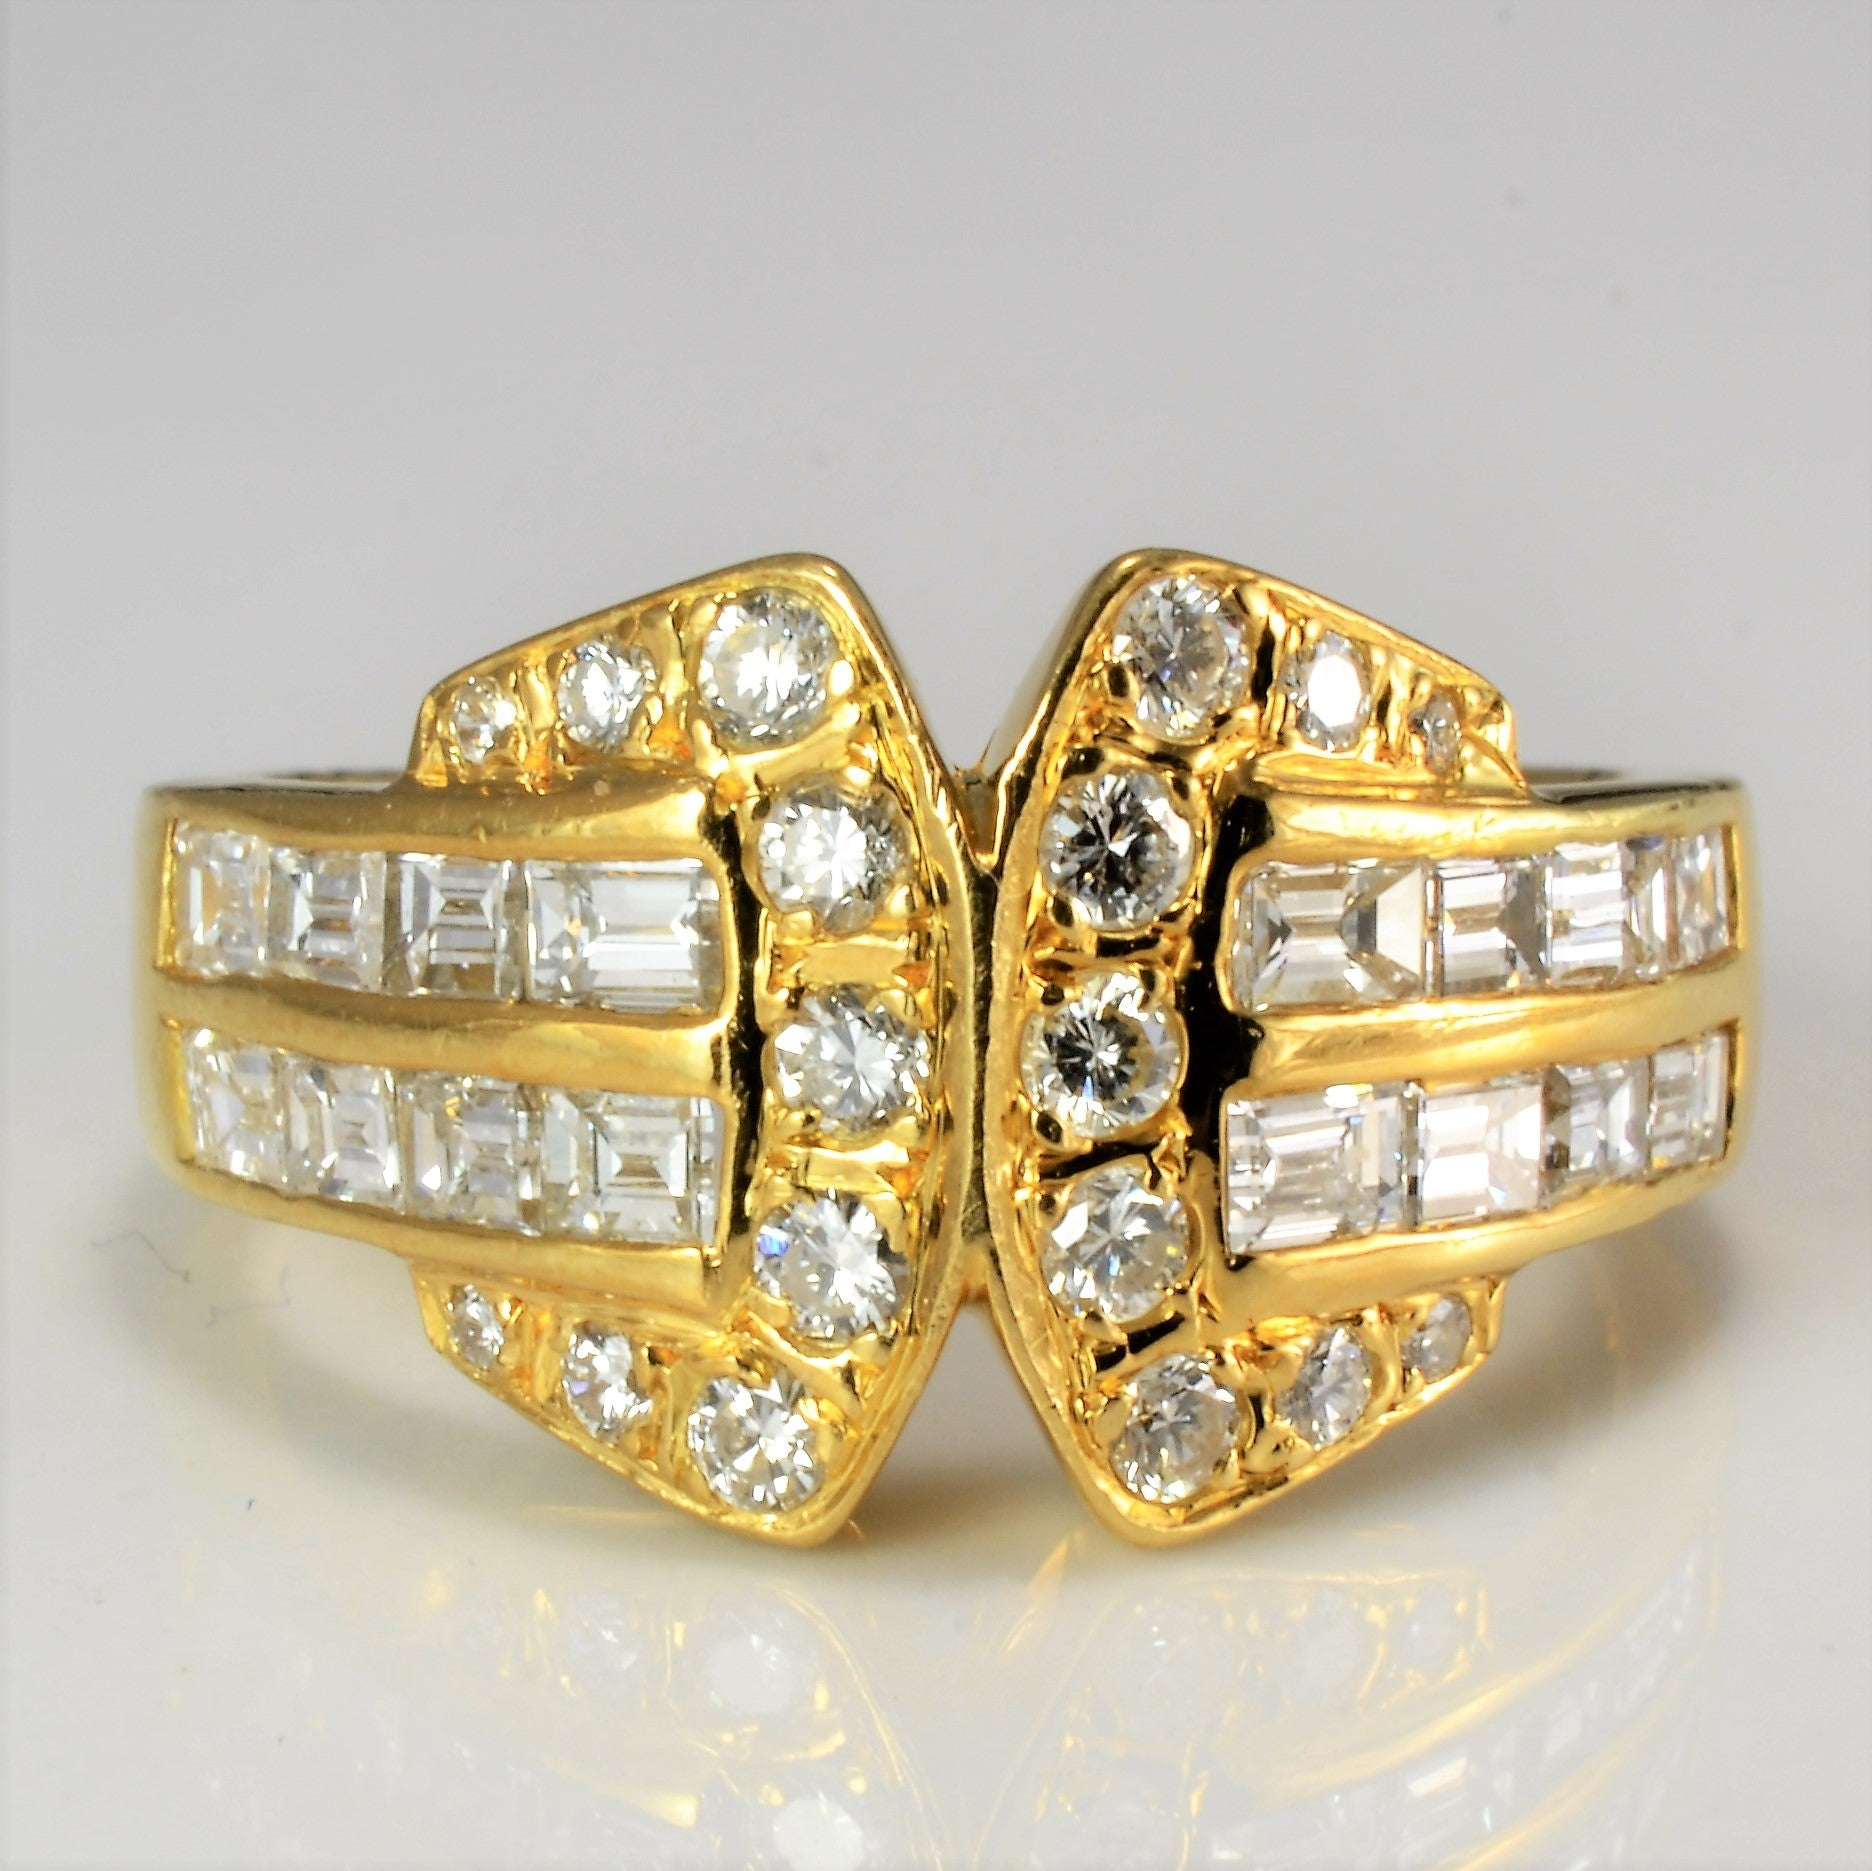 Diamond Belt Buckle Design Ladies Ring | 0.66 ctw, SZ 5.5 |